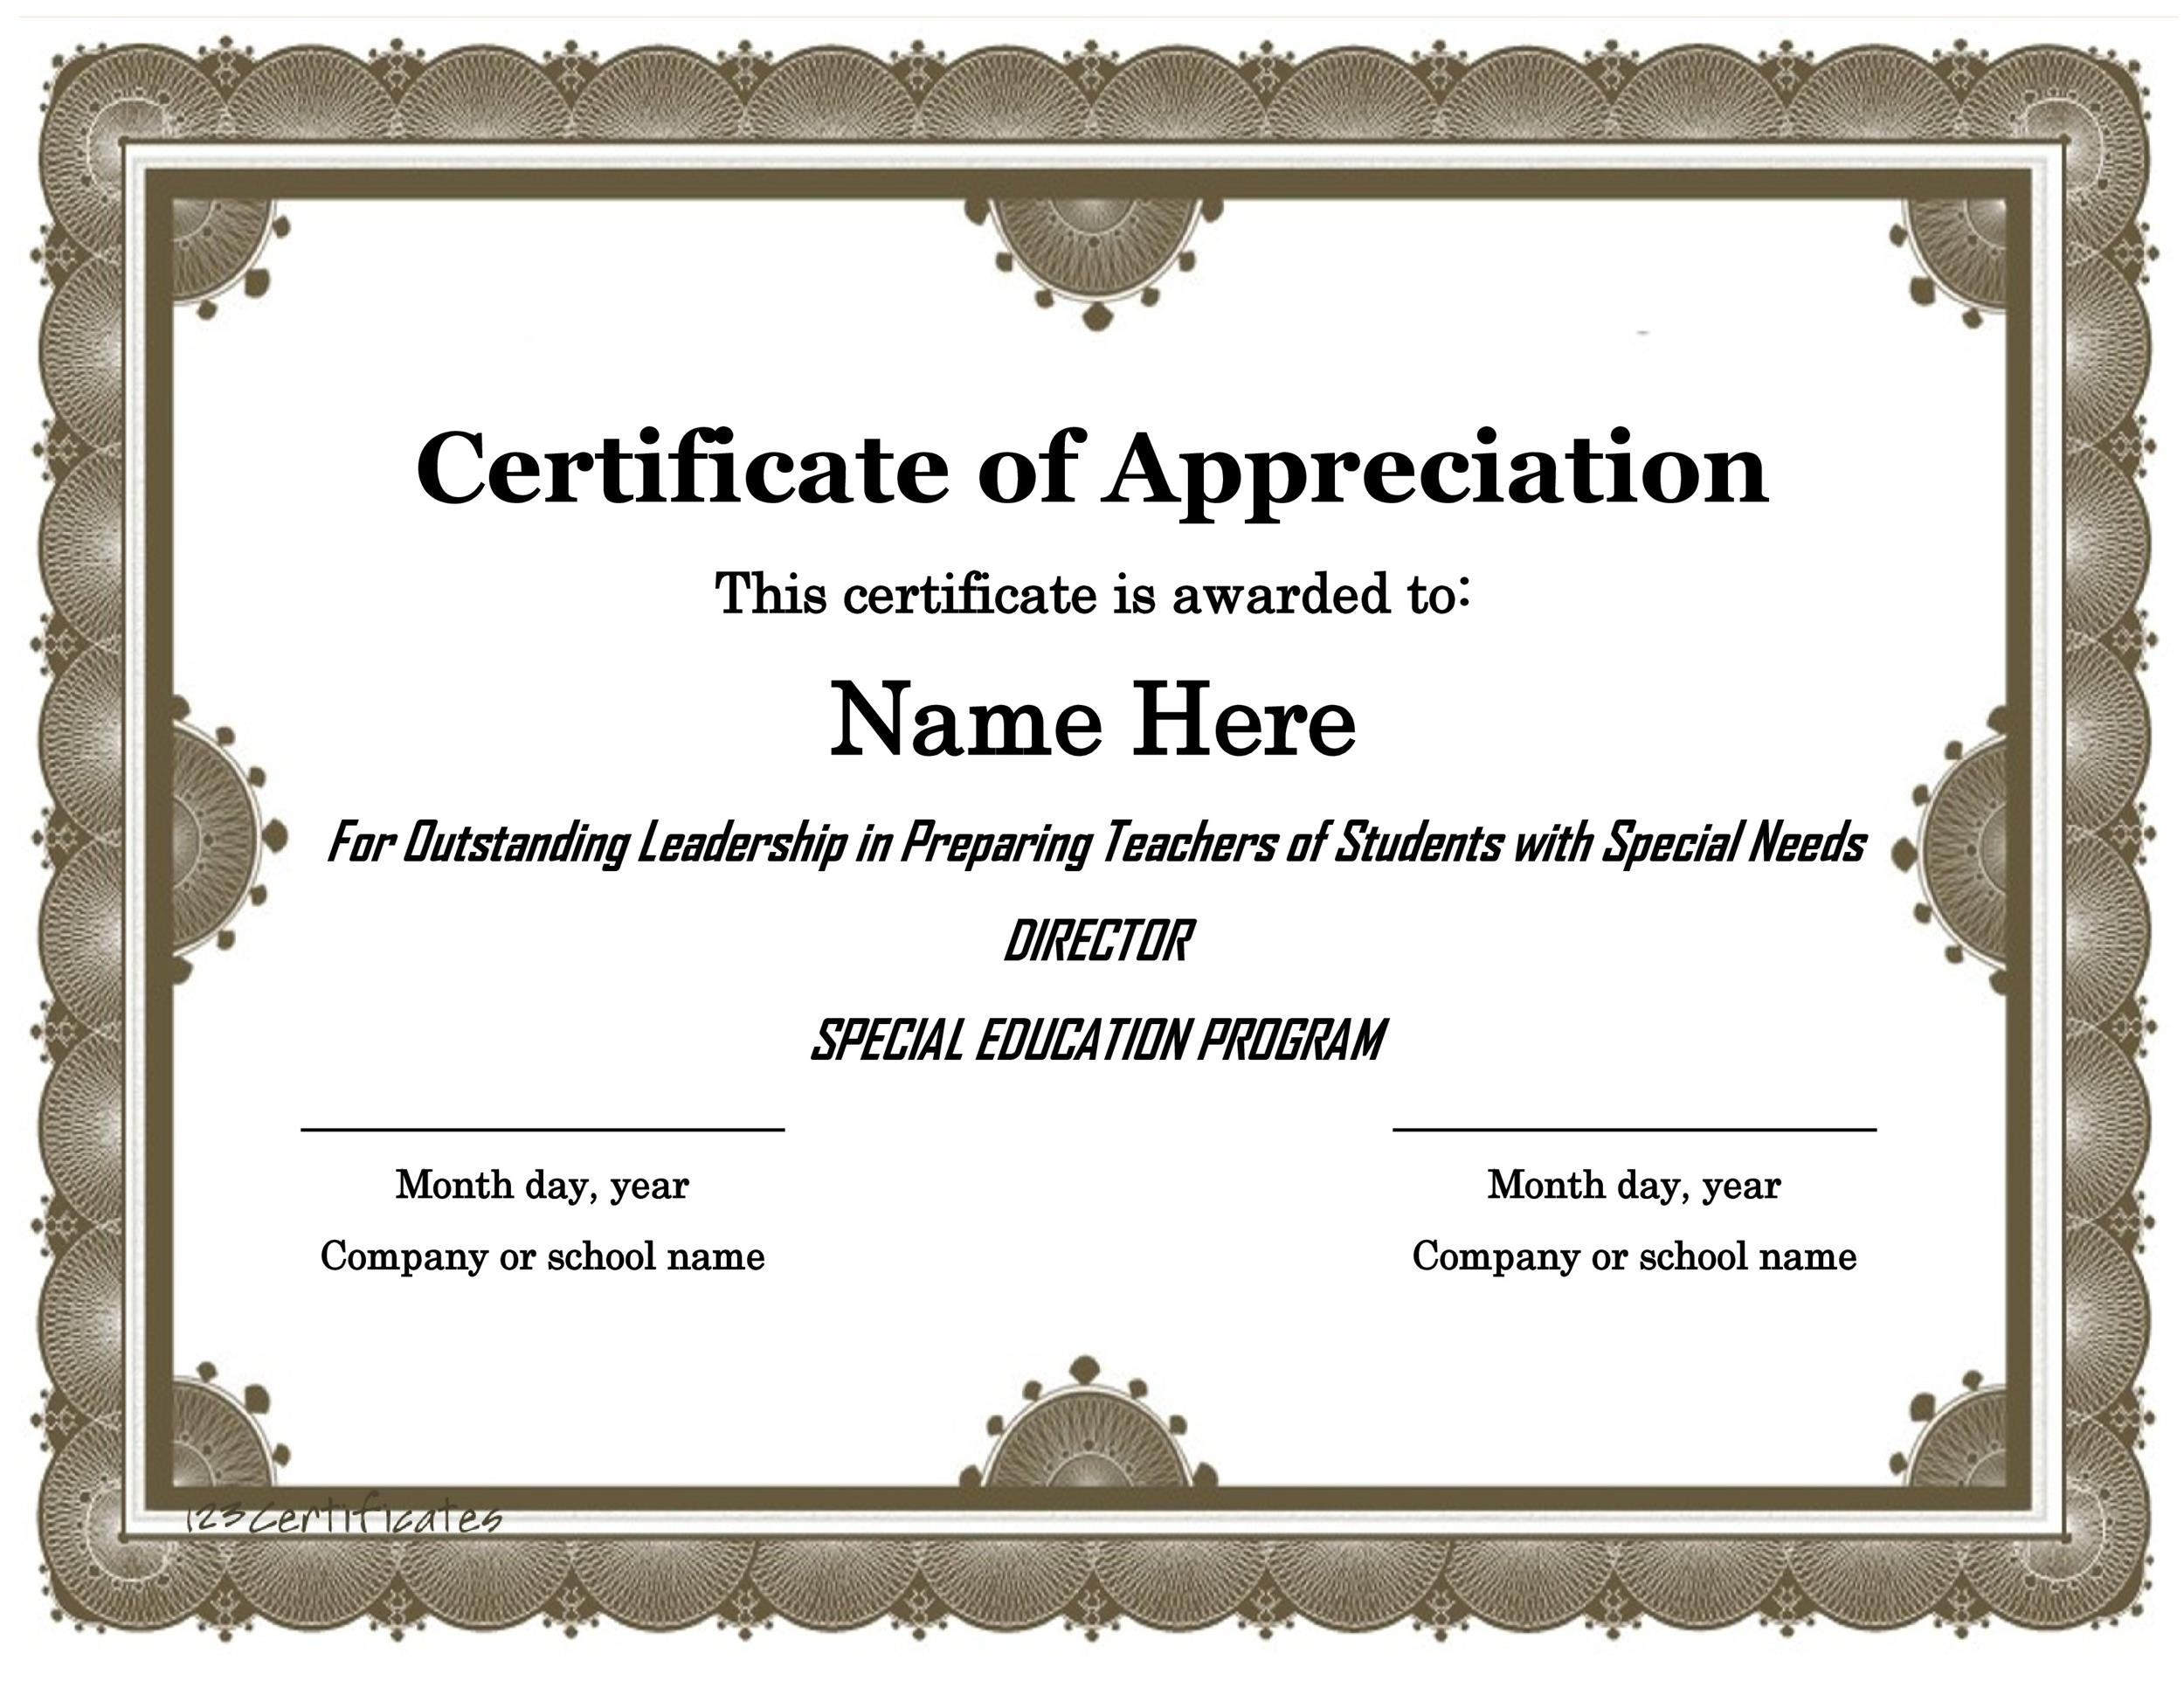 35 Free Certificate of Appreciation Templates and Letters